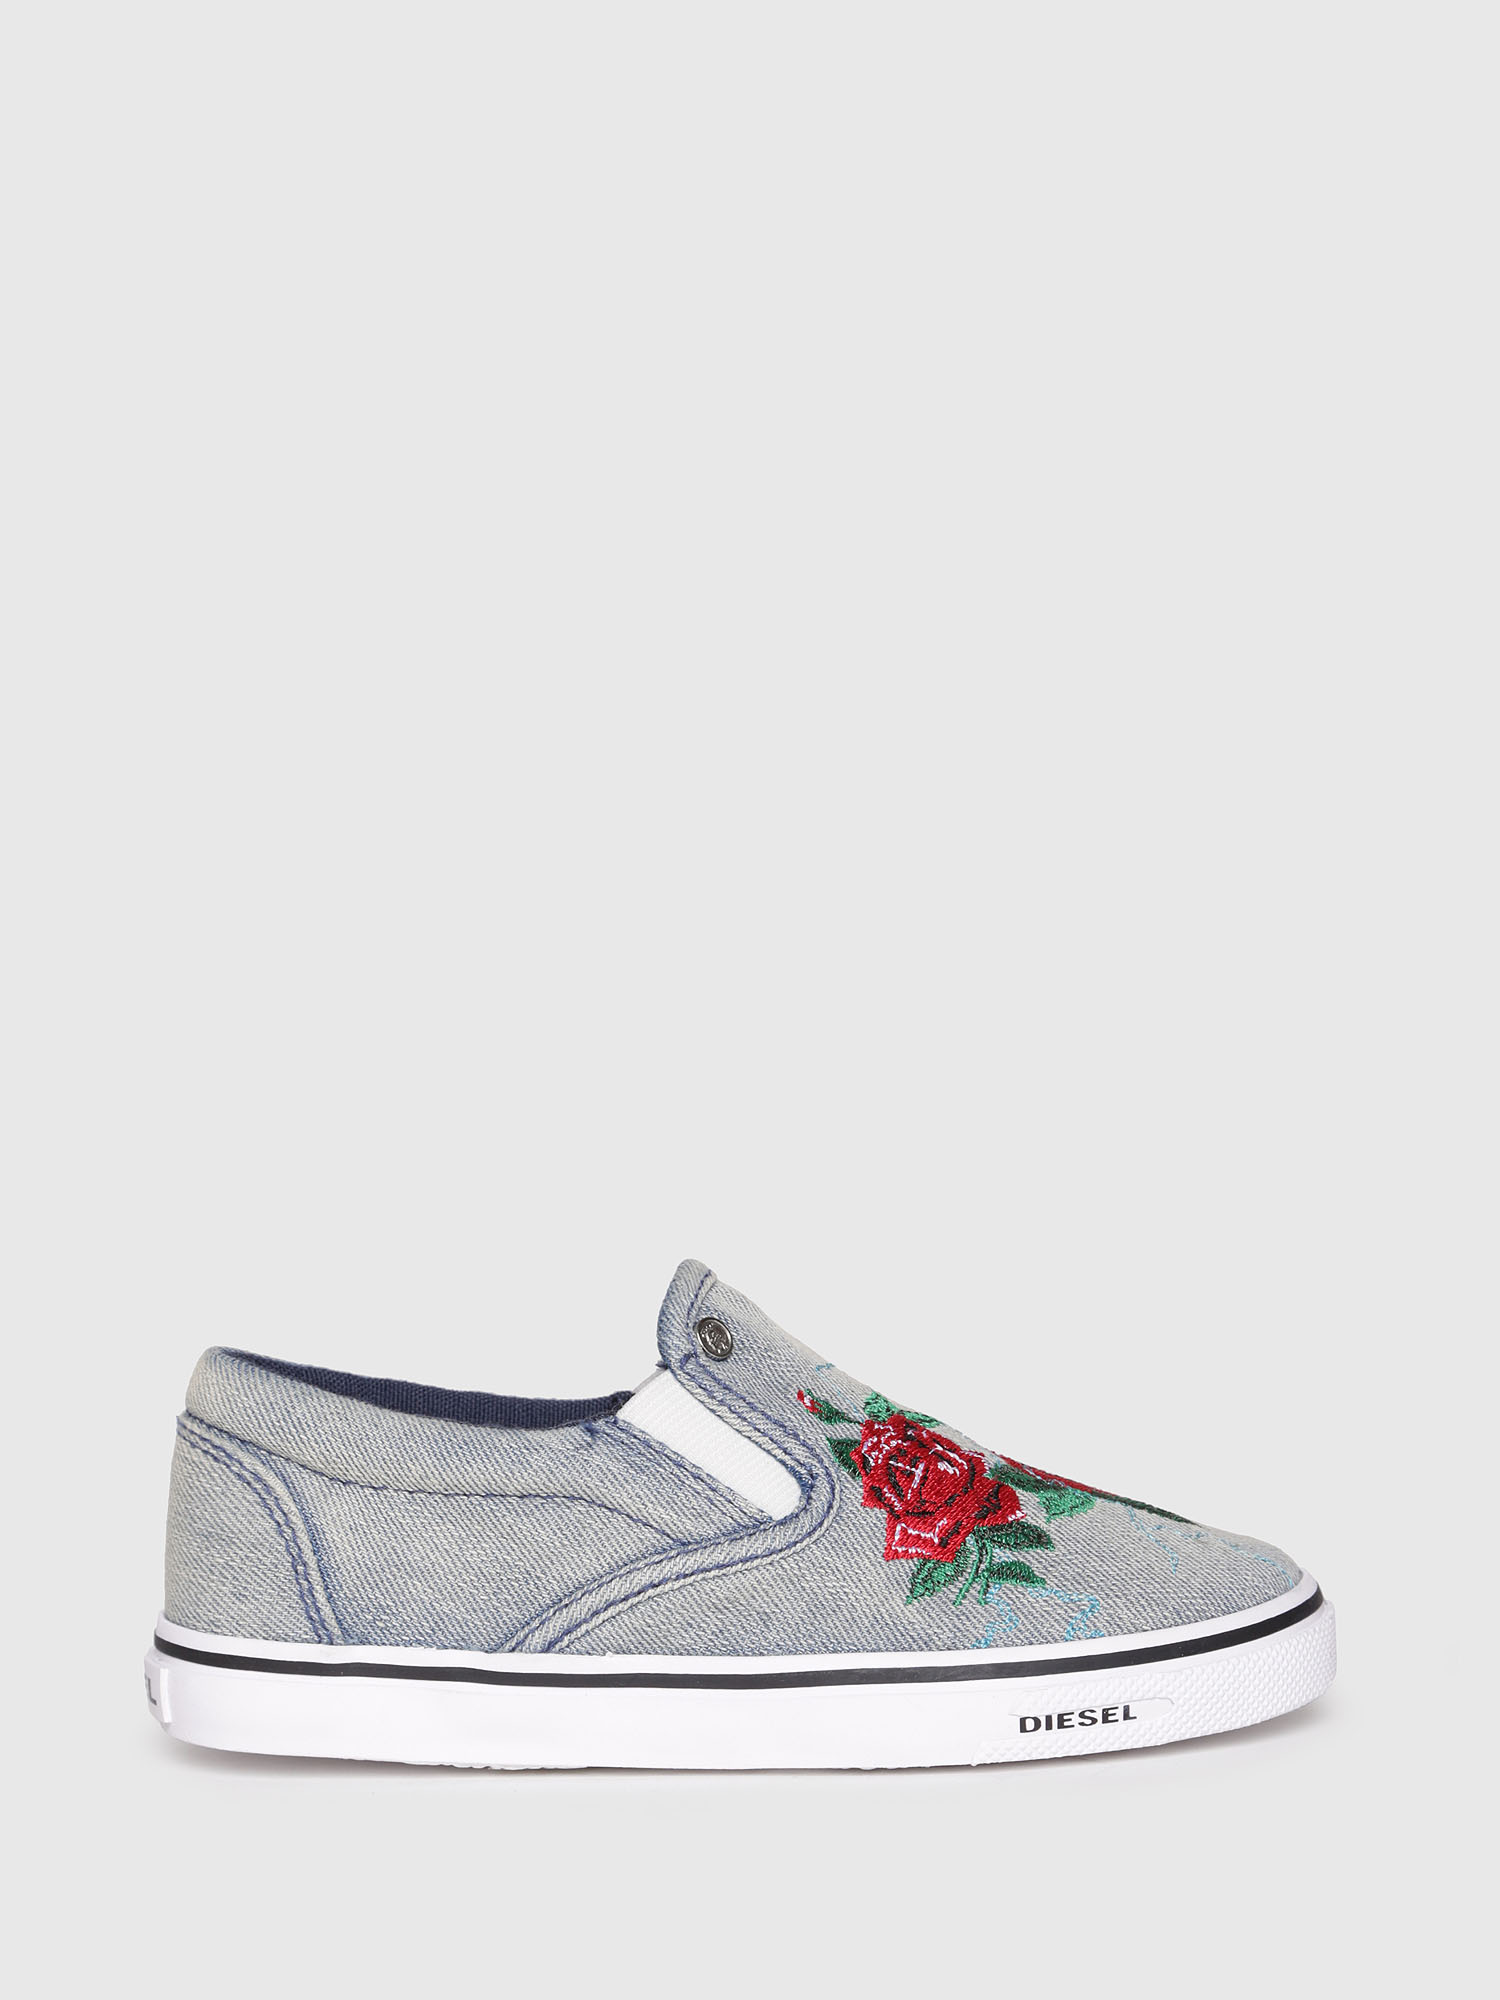 Diesel - SLIP ON 14 ROSE CH,  - Footwear - Image 1